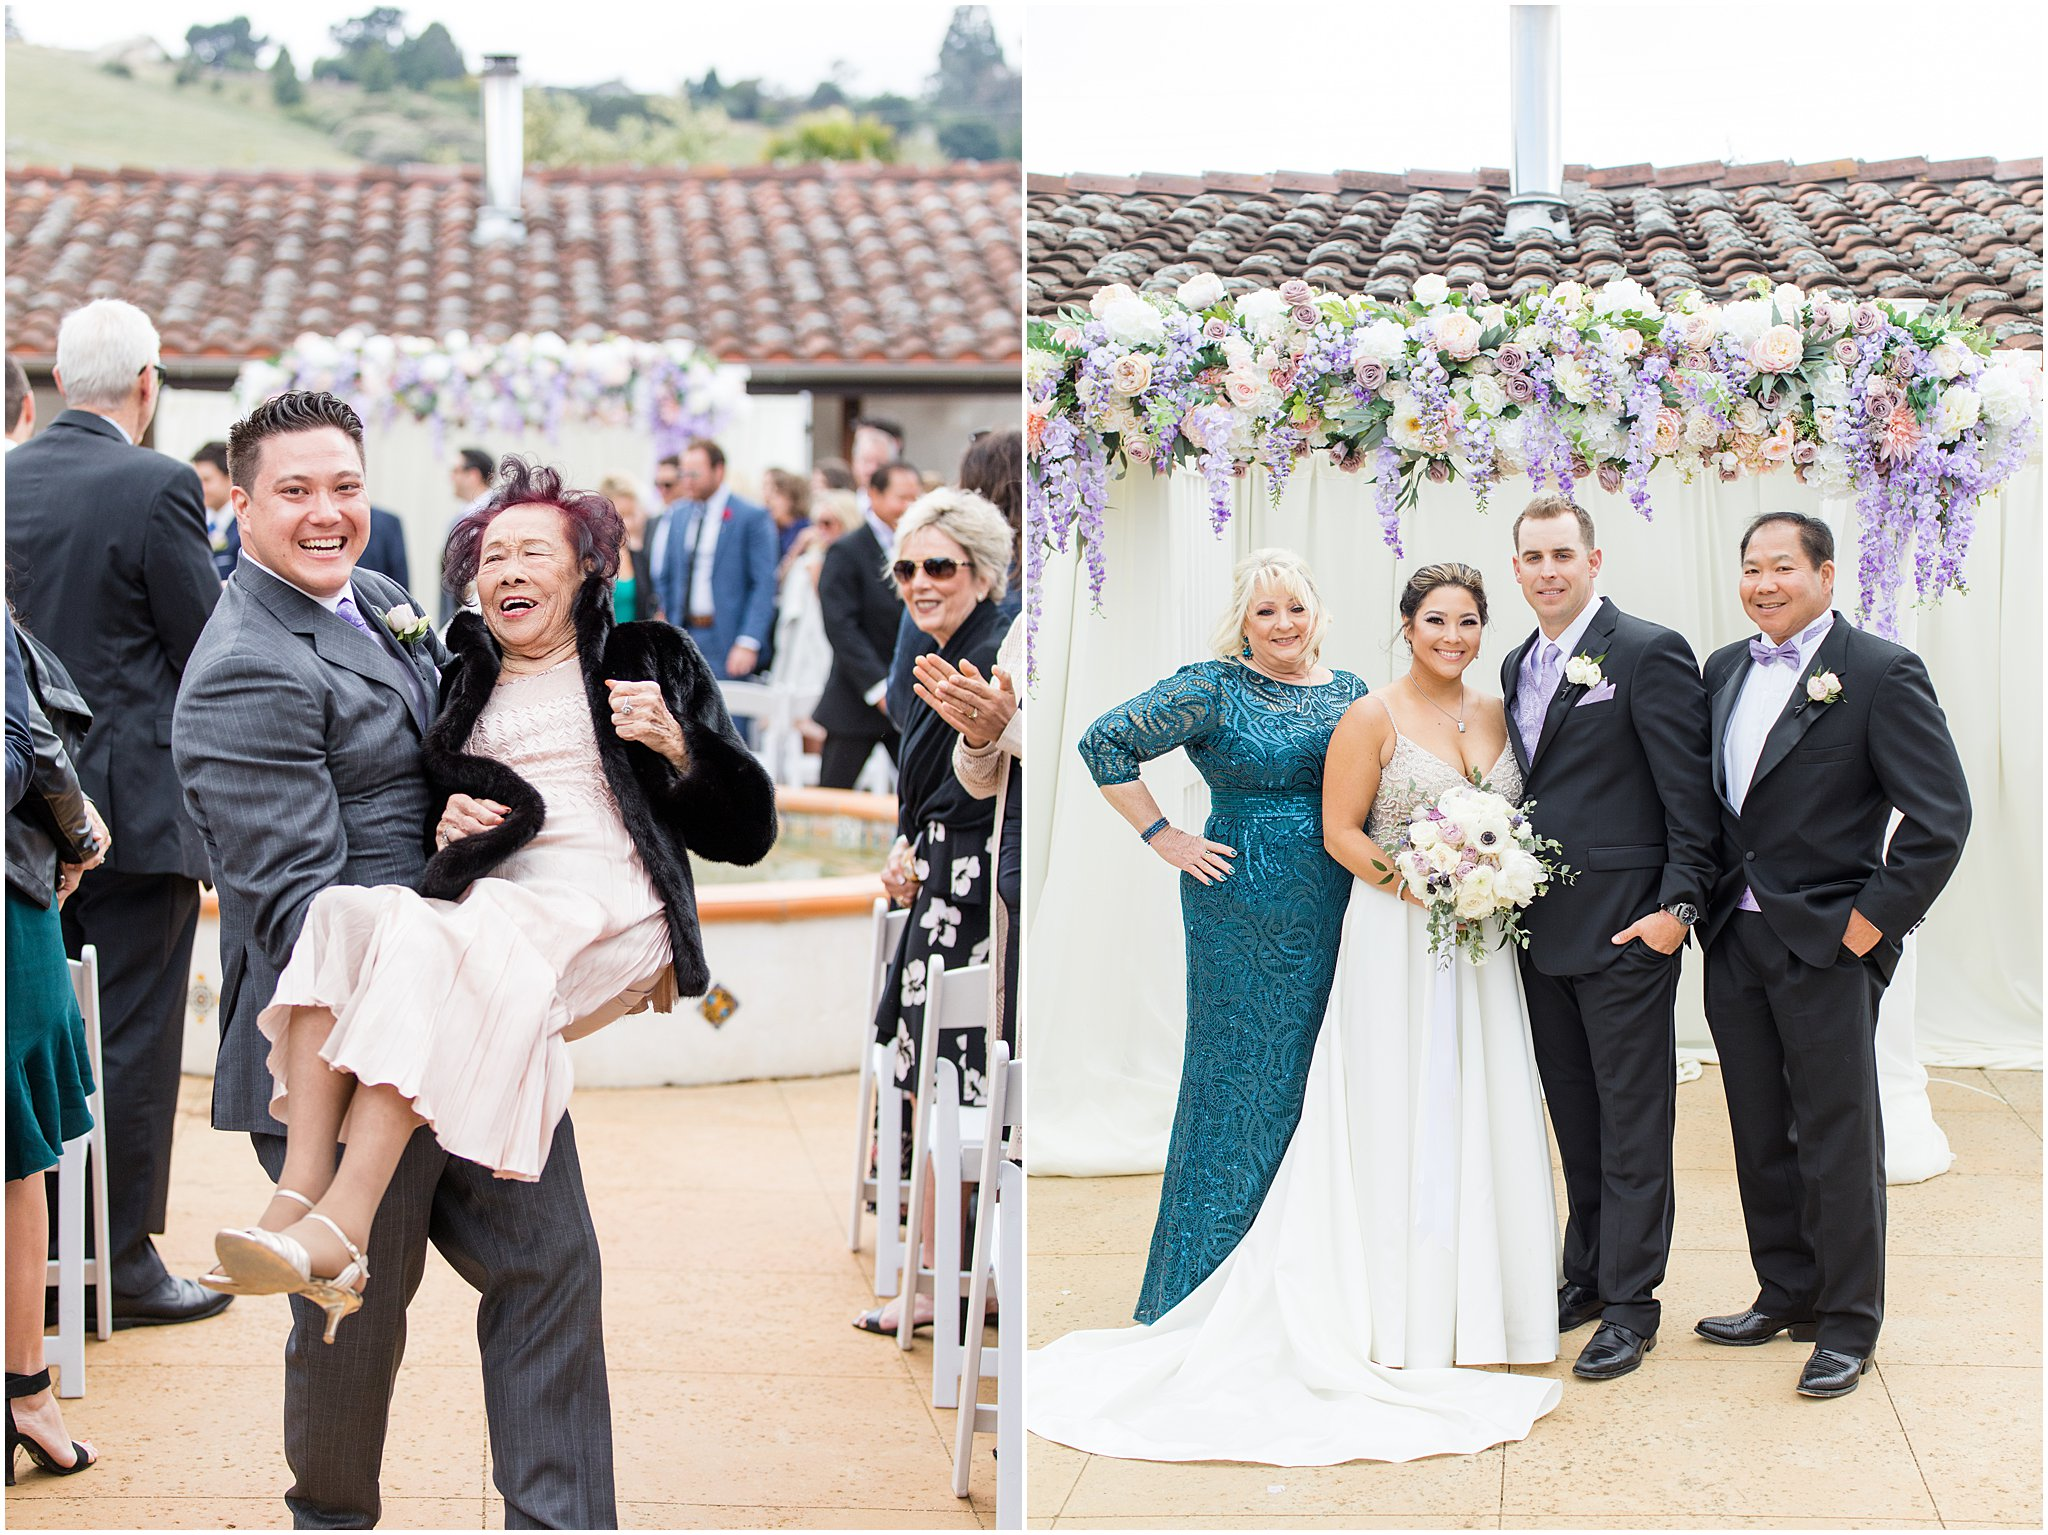 2019 wedding san juan bautista hacienda de leal vineyards bay area wedding photographer_0056.jpg